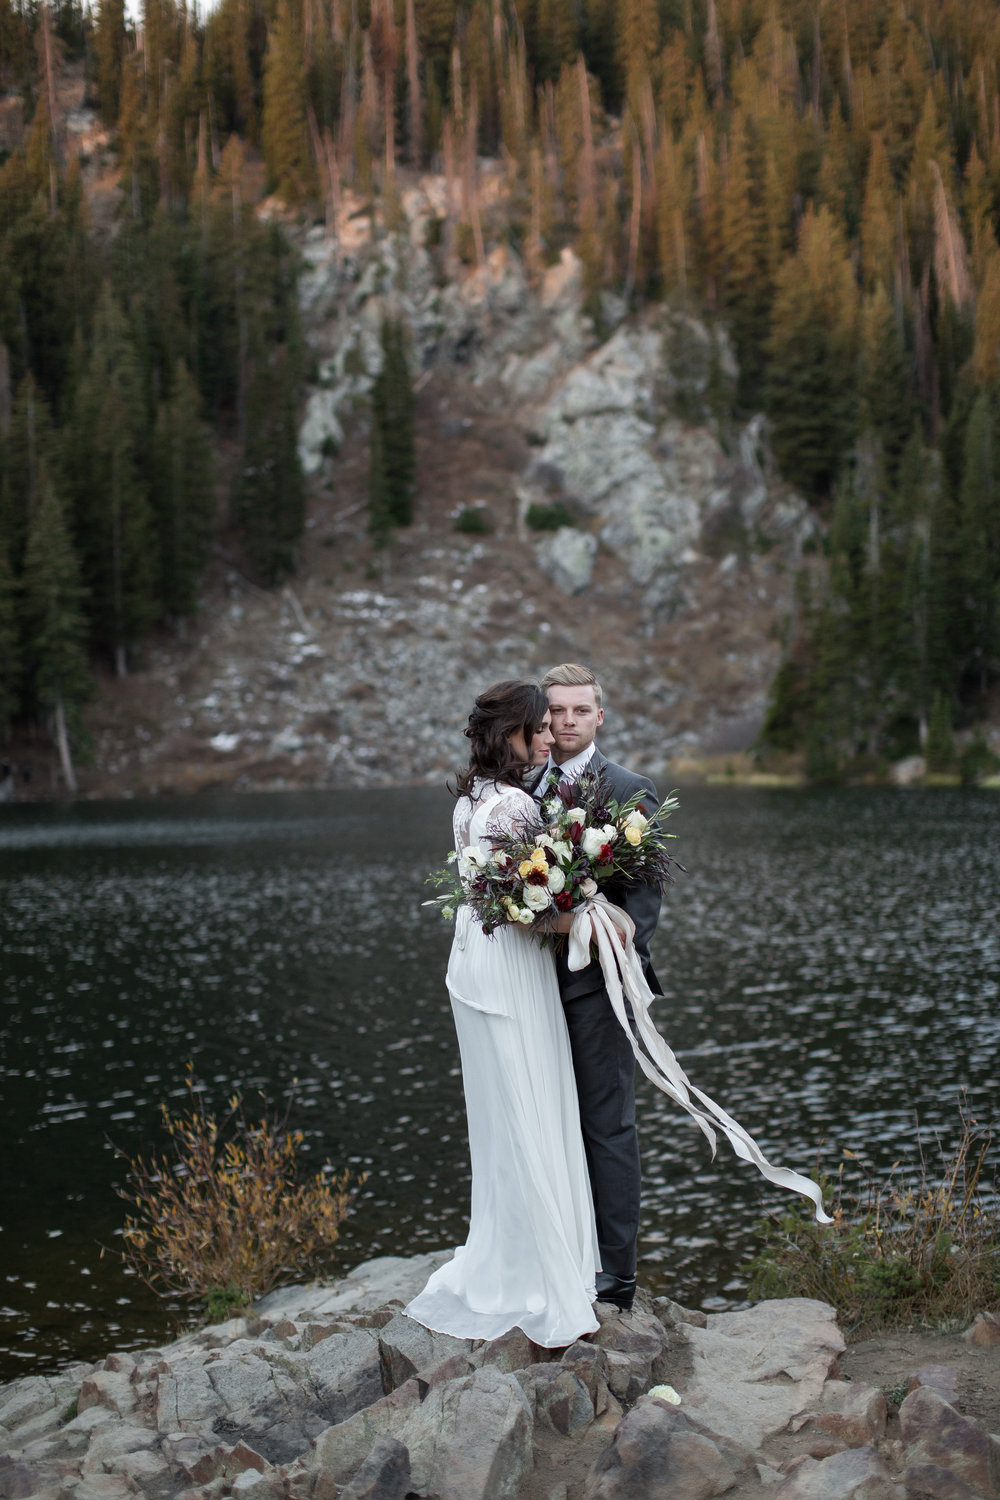 UtahValleyBrideShootTR2016 (12 of 110).jpg